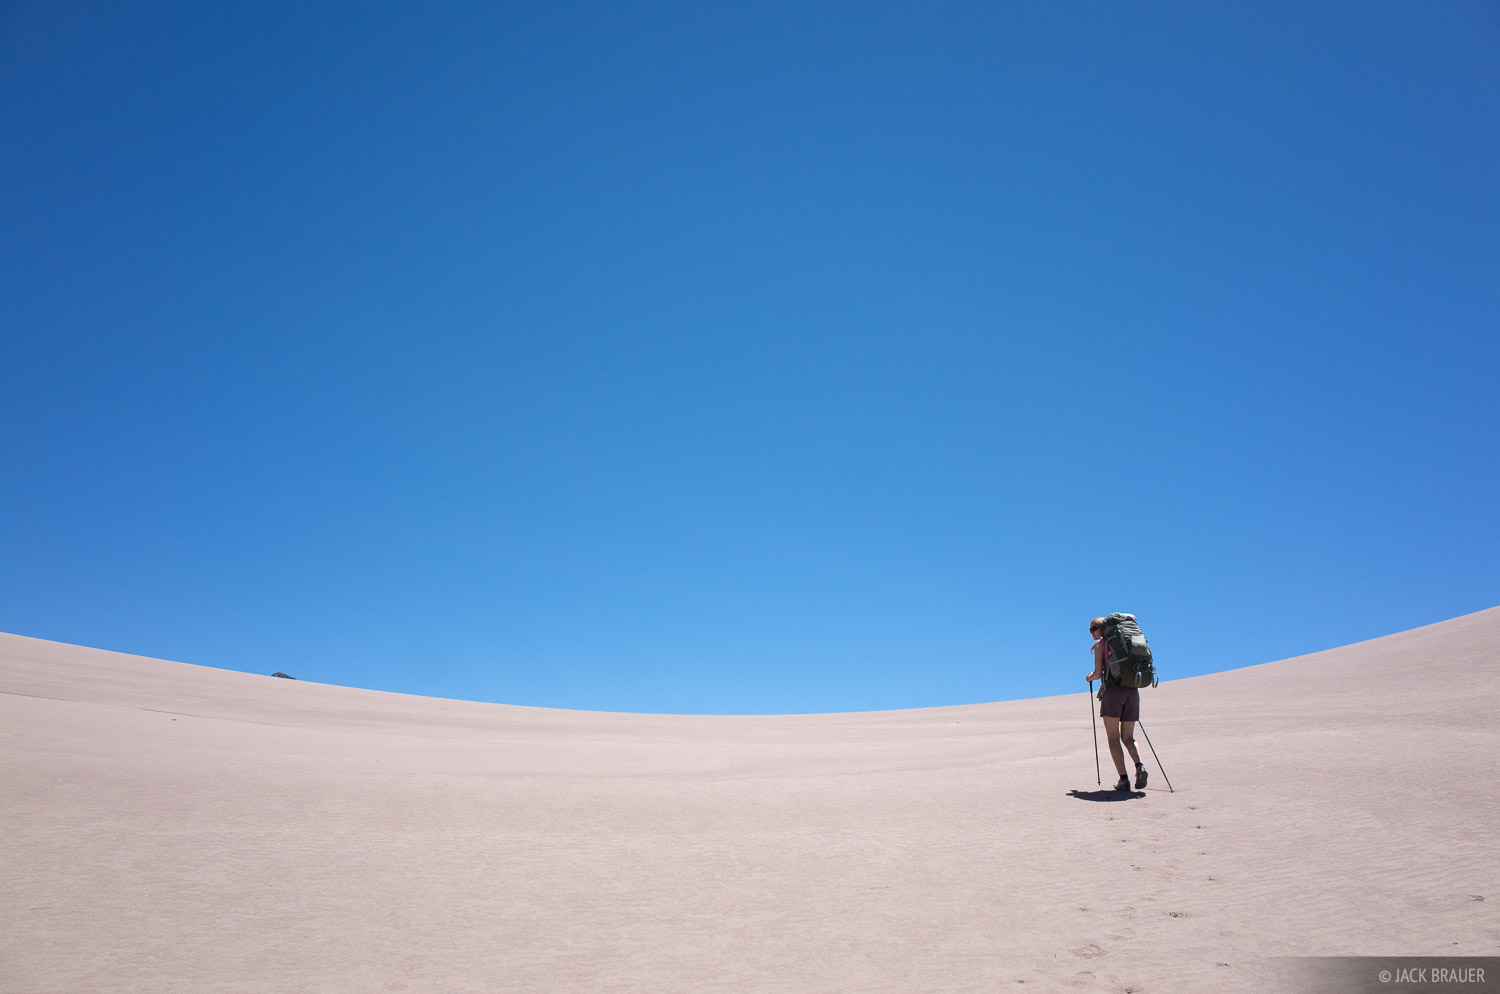 Hiking in the Great Sand Dunes.